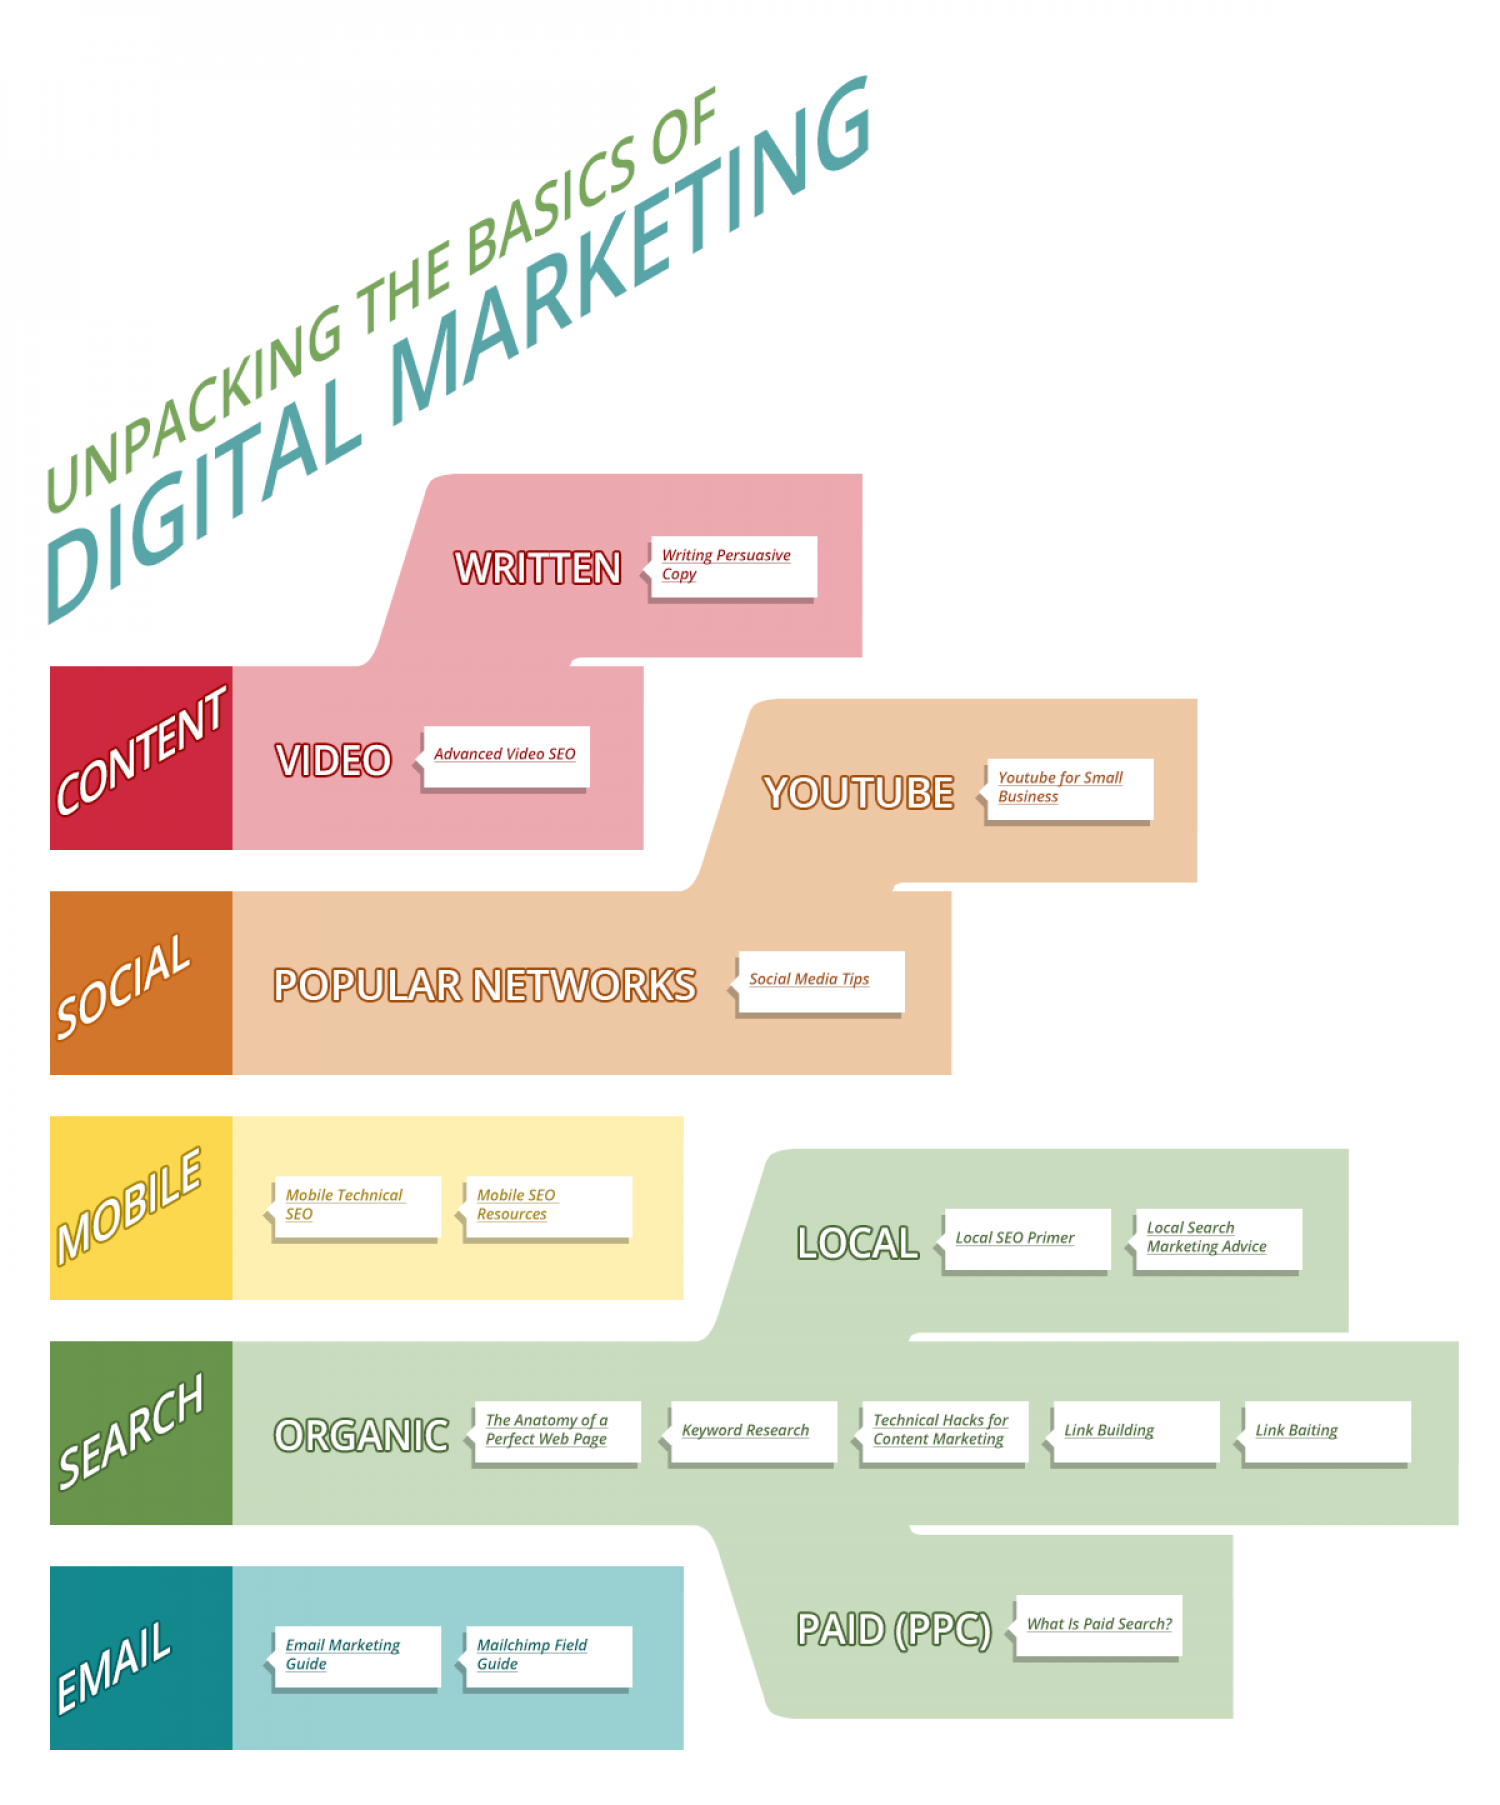 Unpacking the Basics of Digital Marketing Infographic